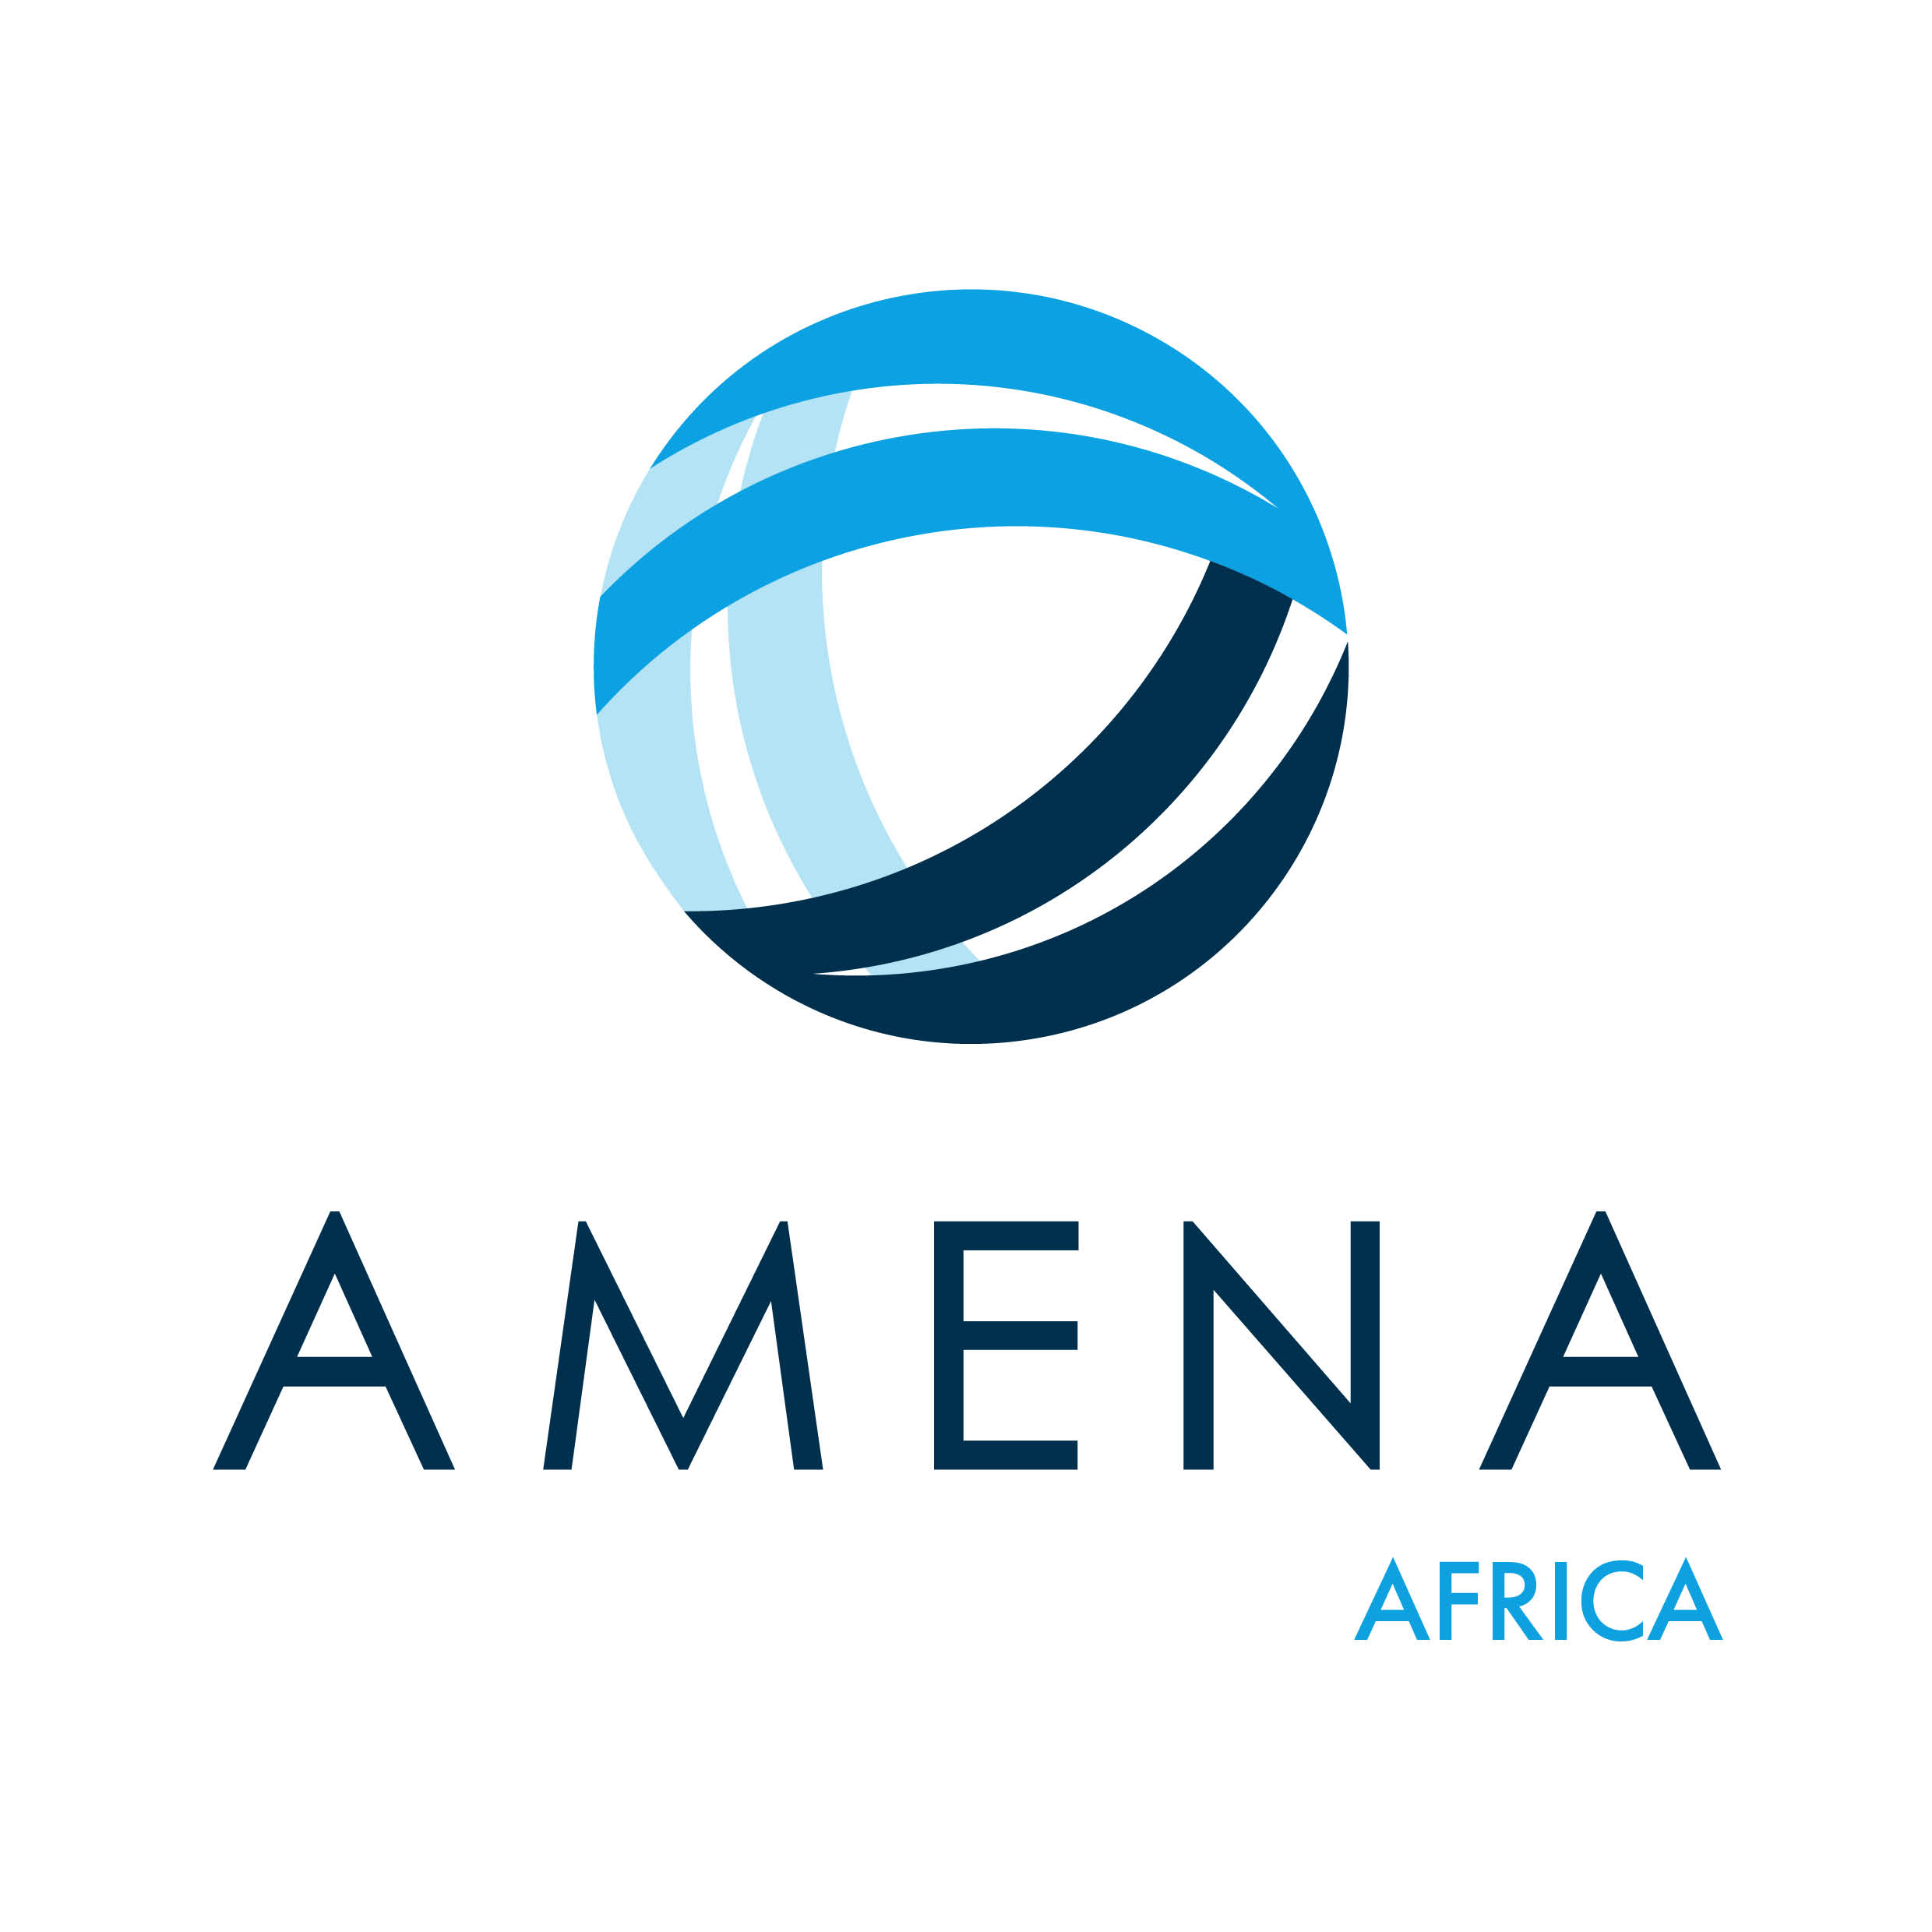 AMENA Africa Ltd. logo